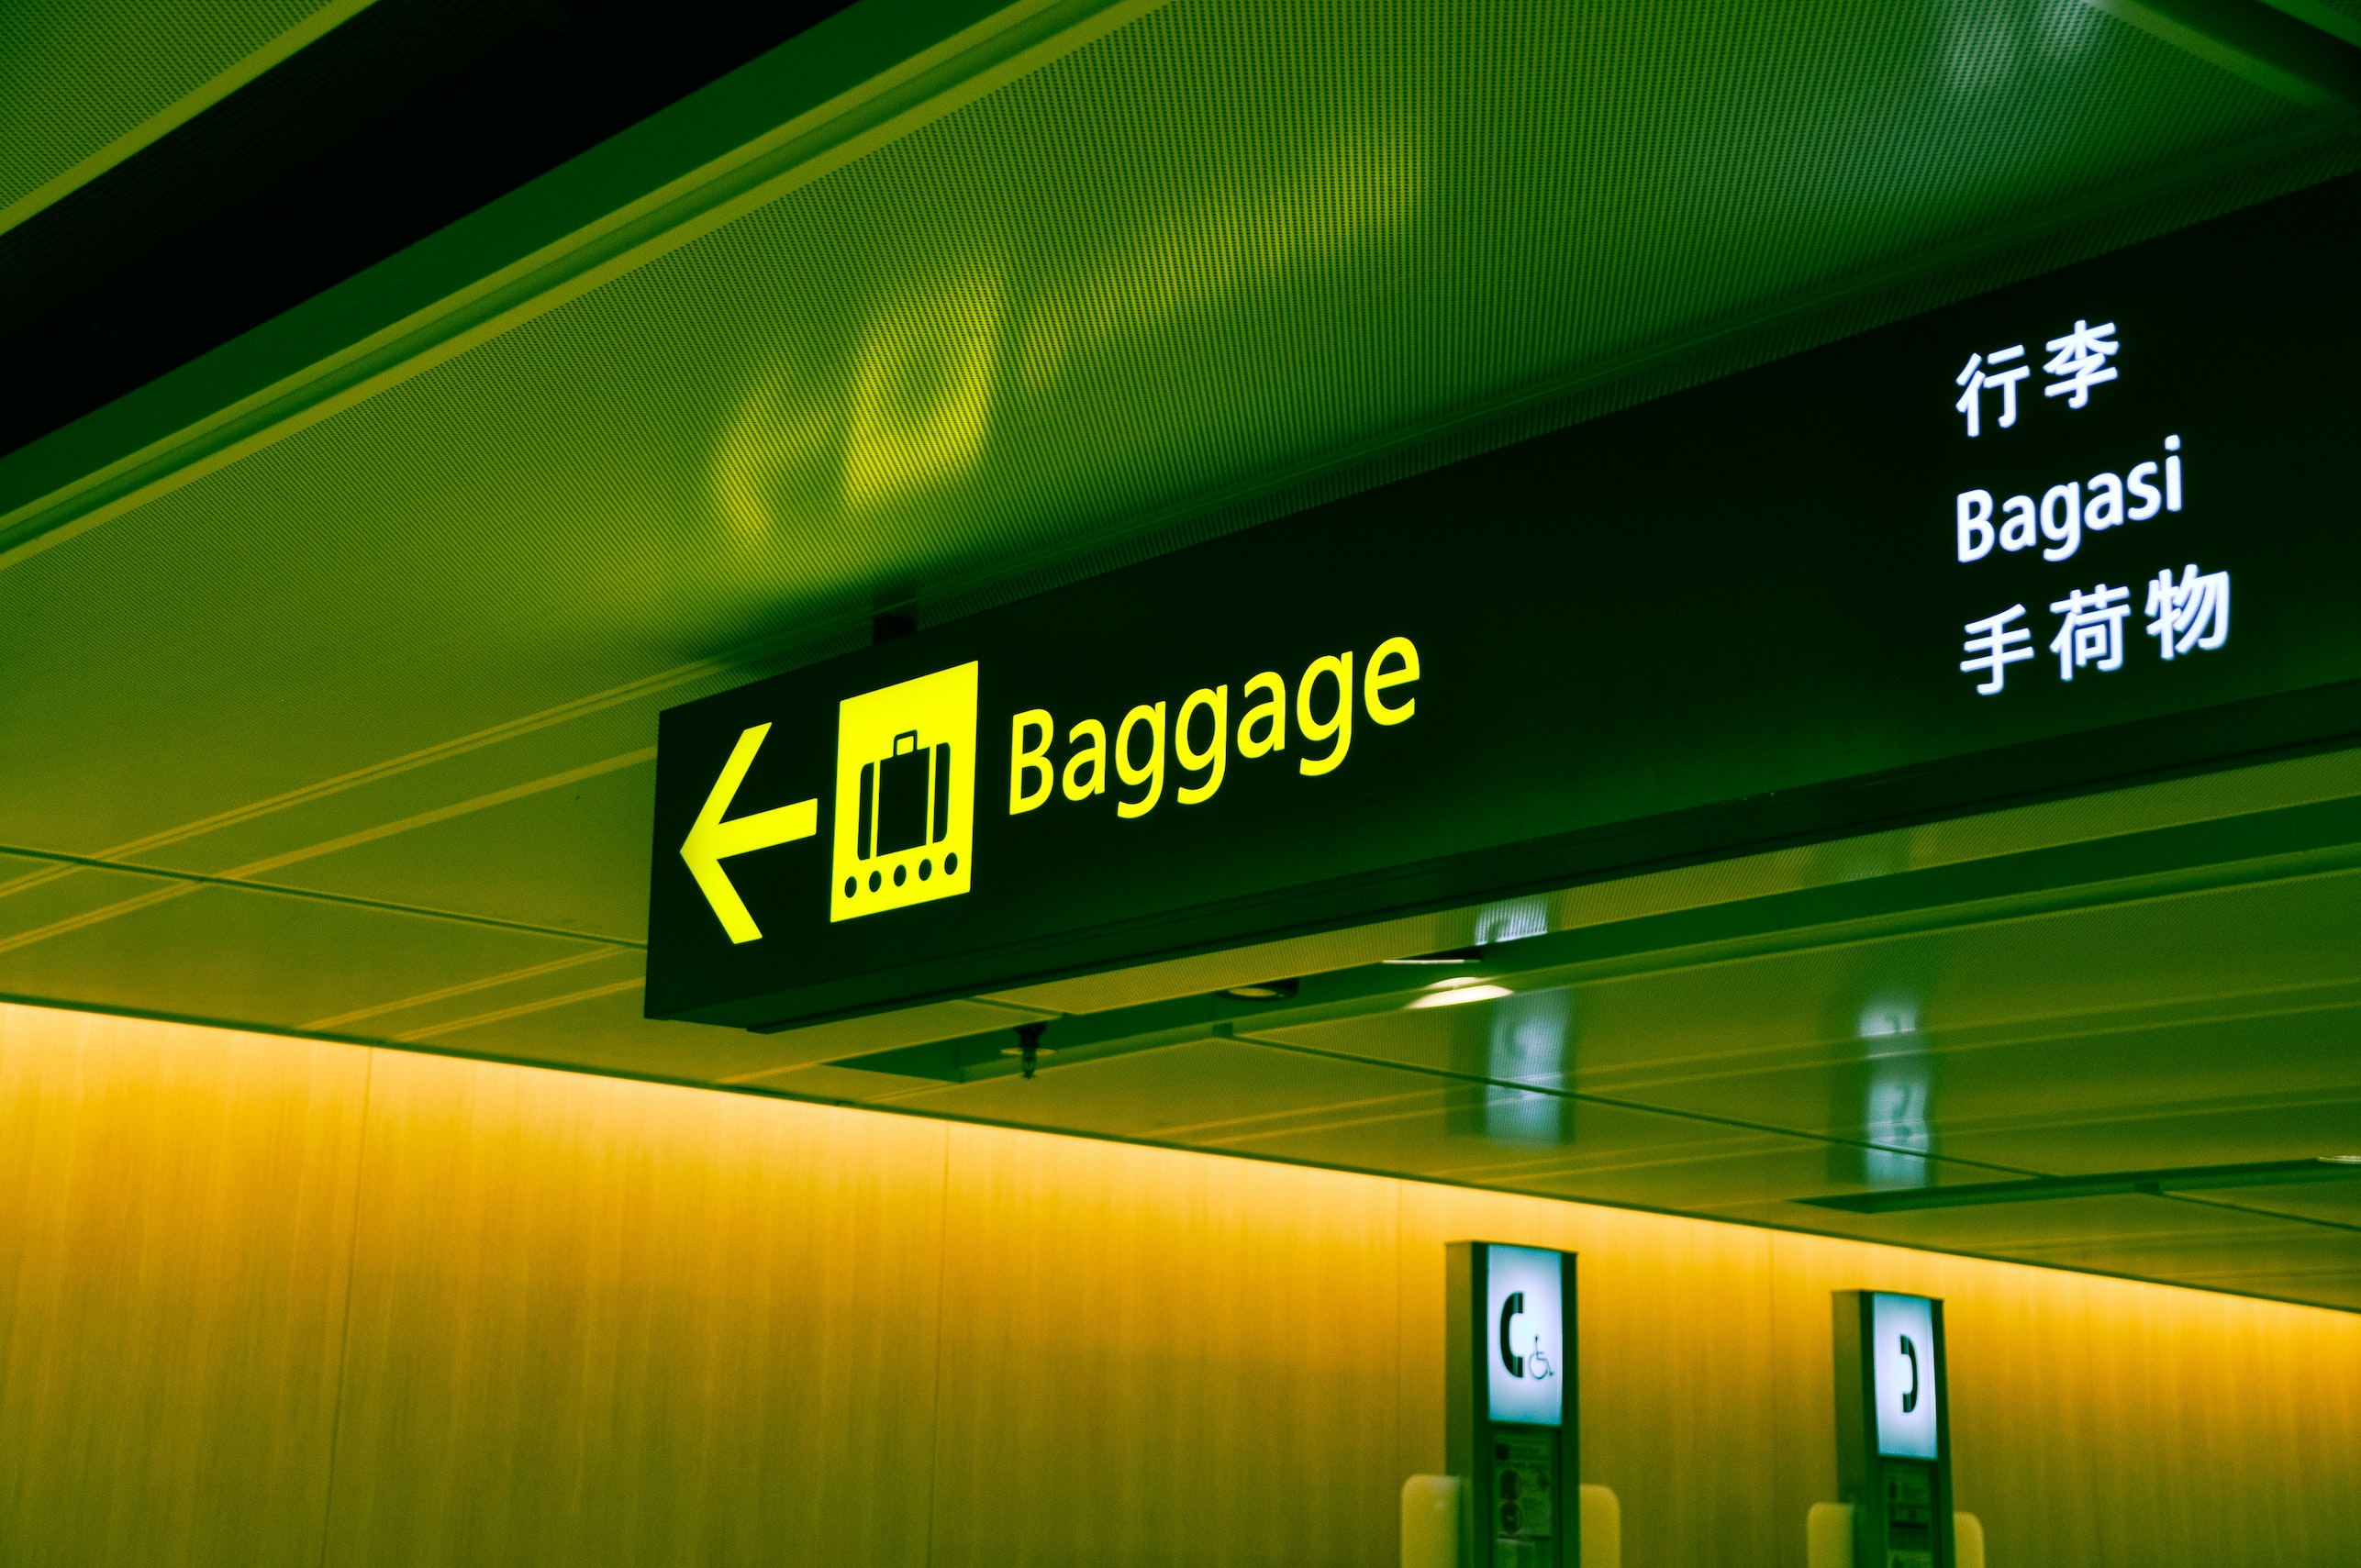 sign pointing to baggage claim in airport